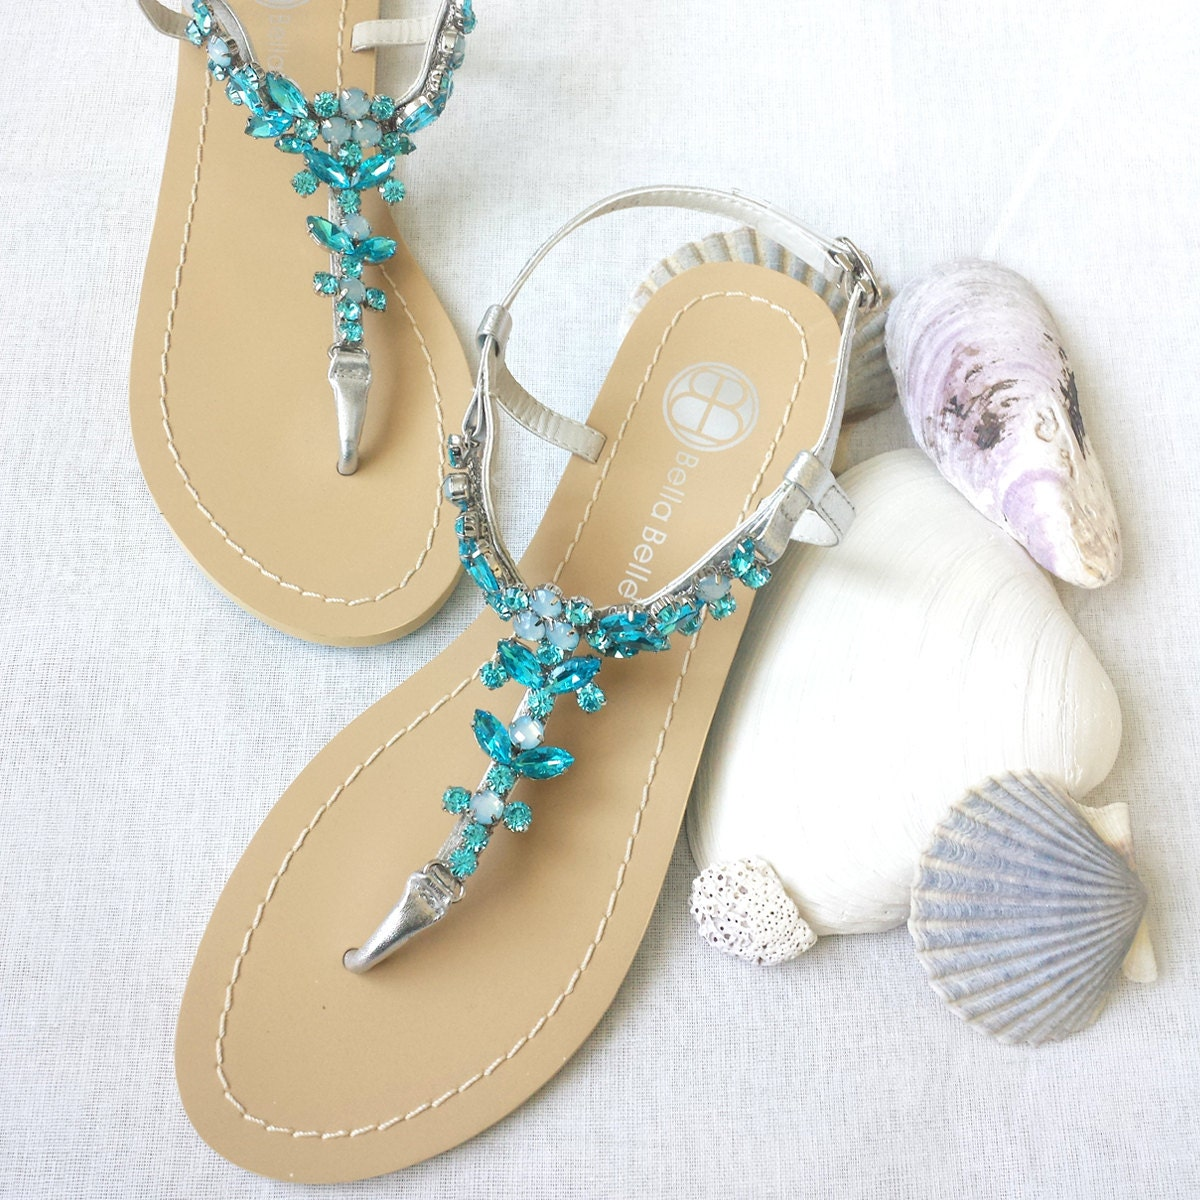 Wedding Sandals Something Blue Ombre Shoes For Beach